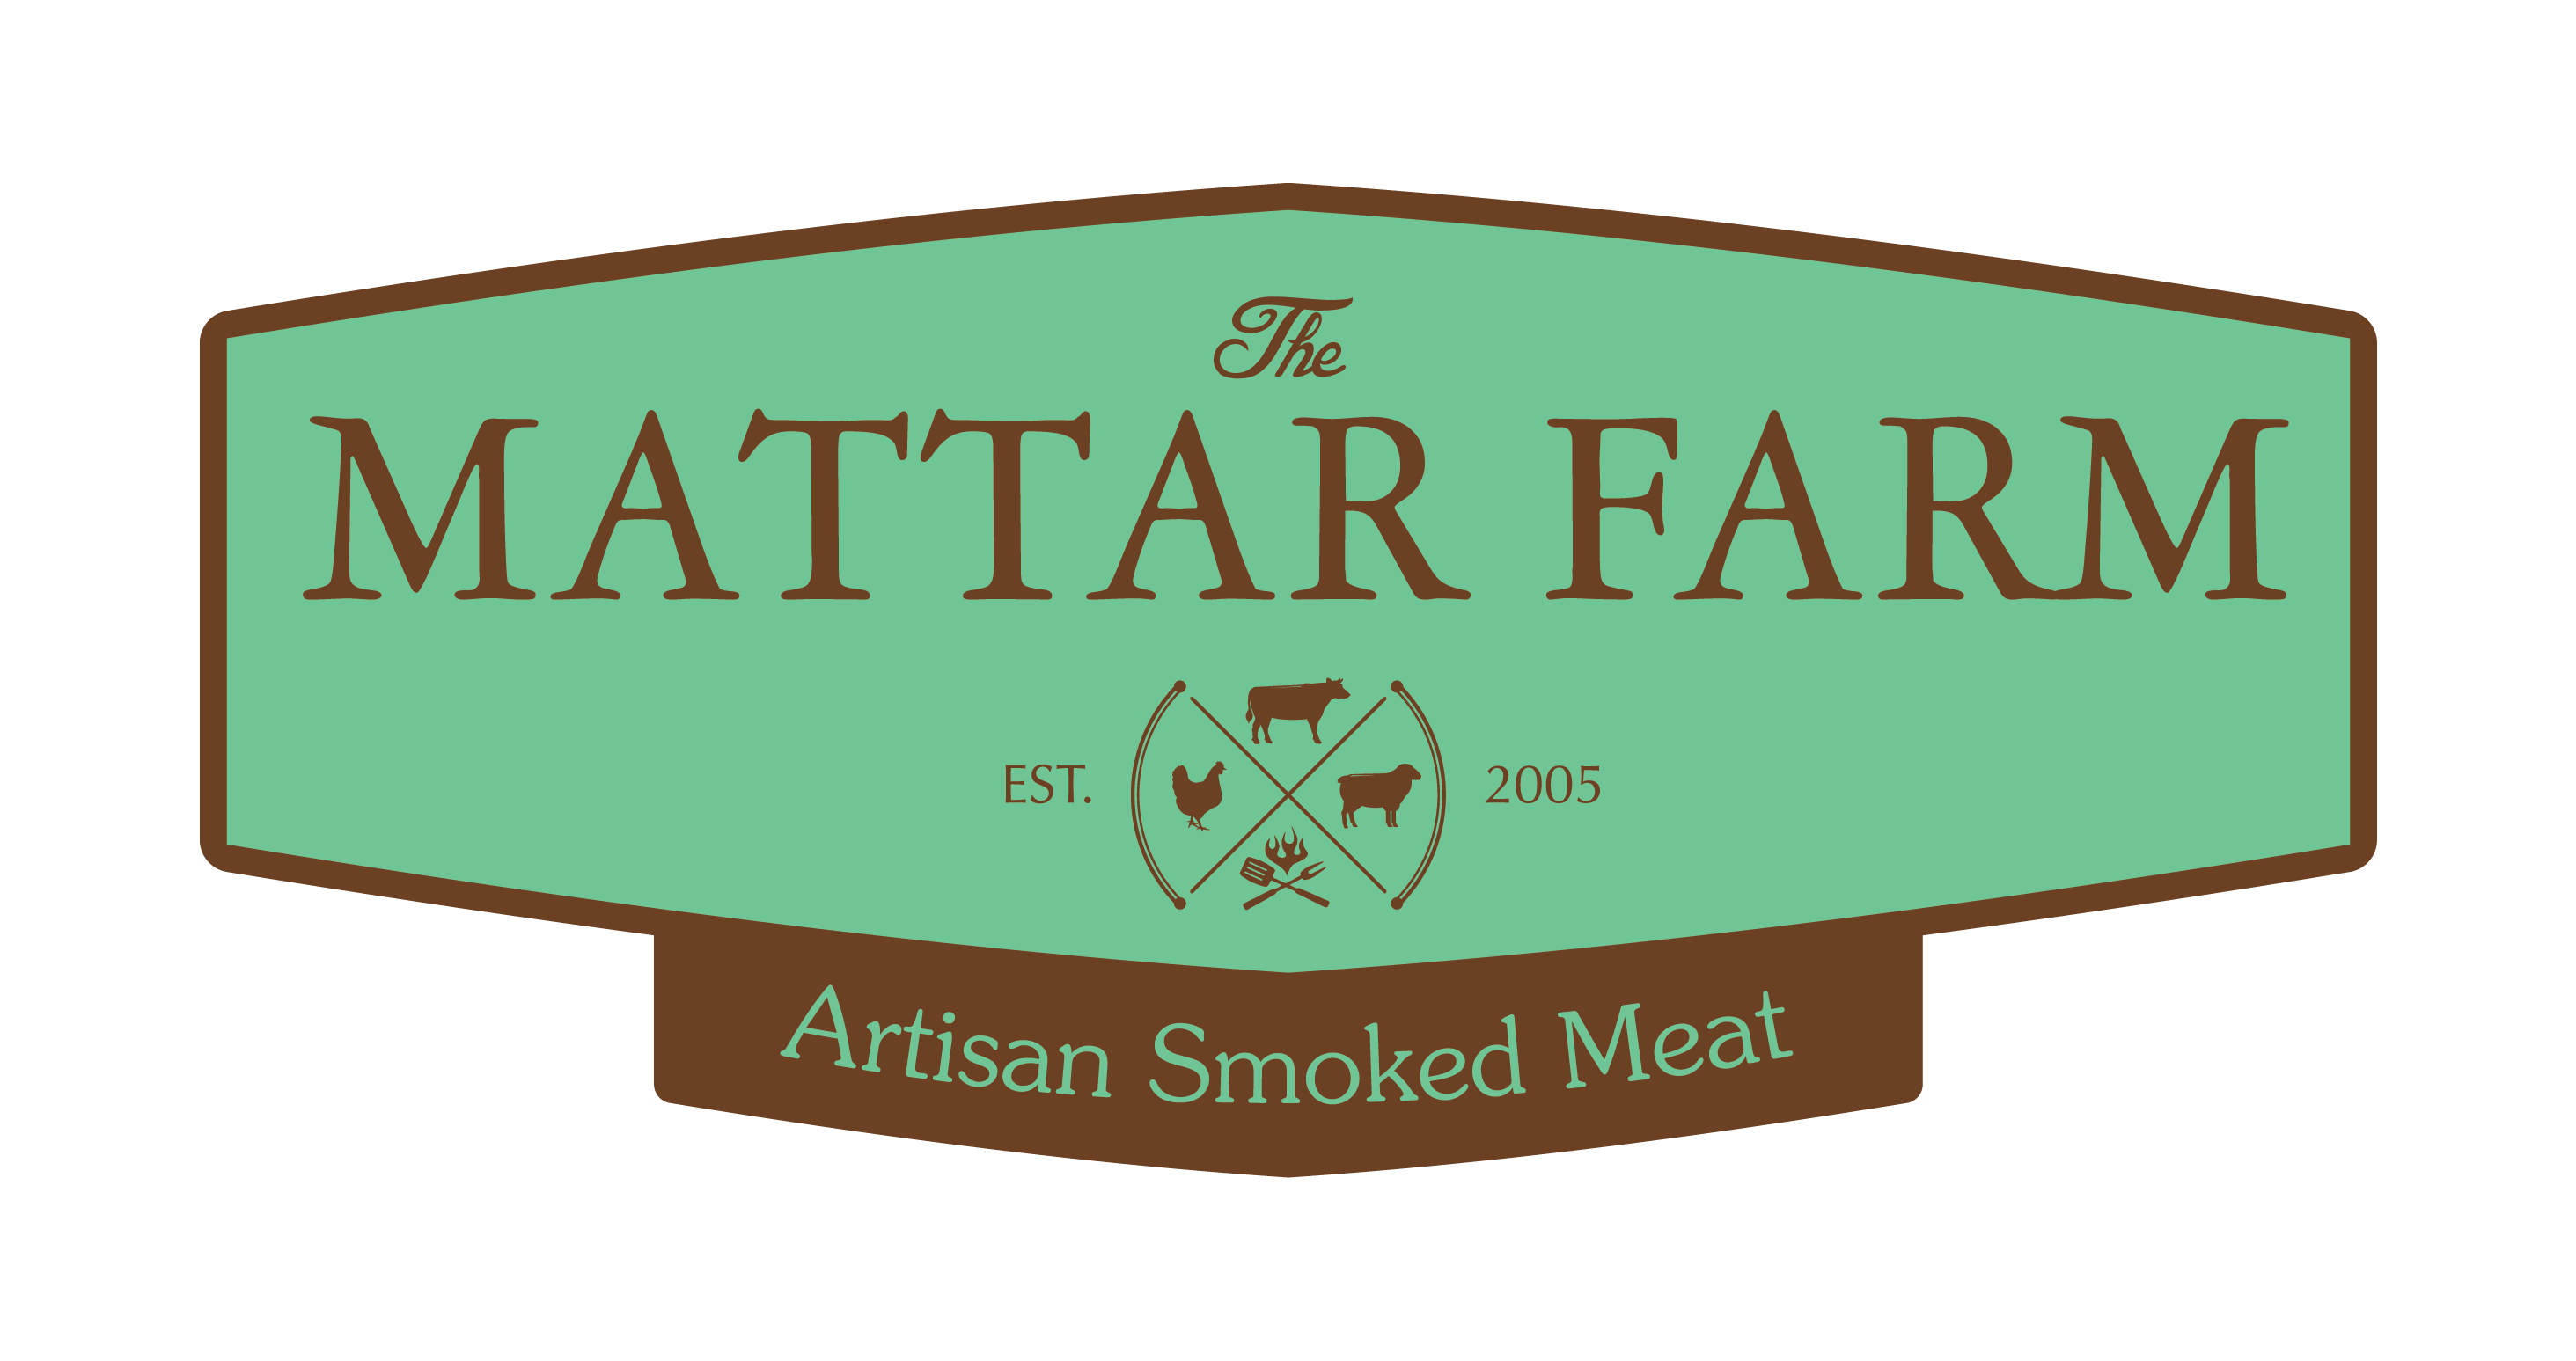 The Mattar Farm